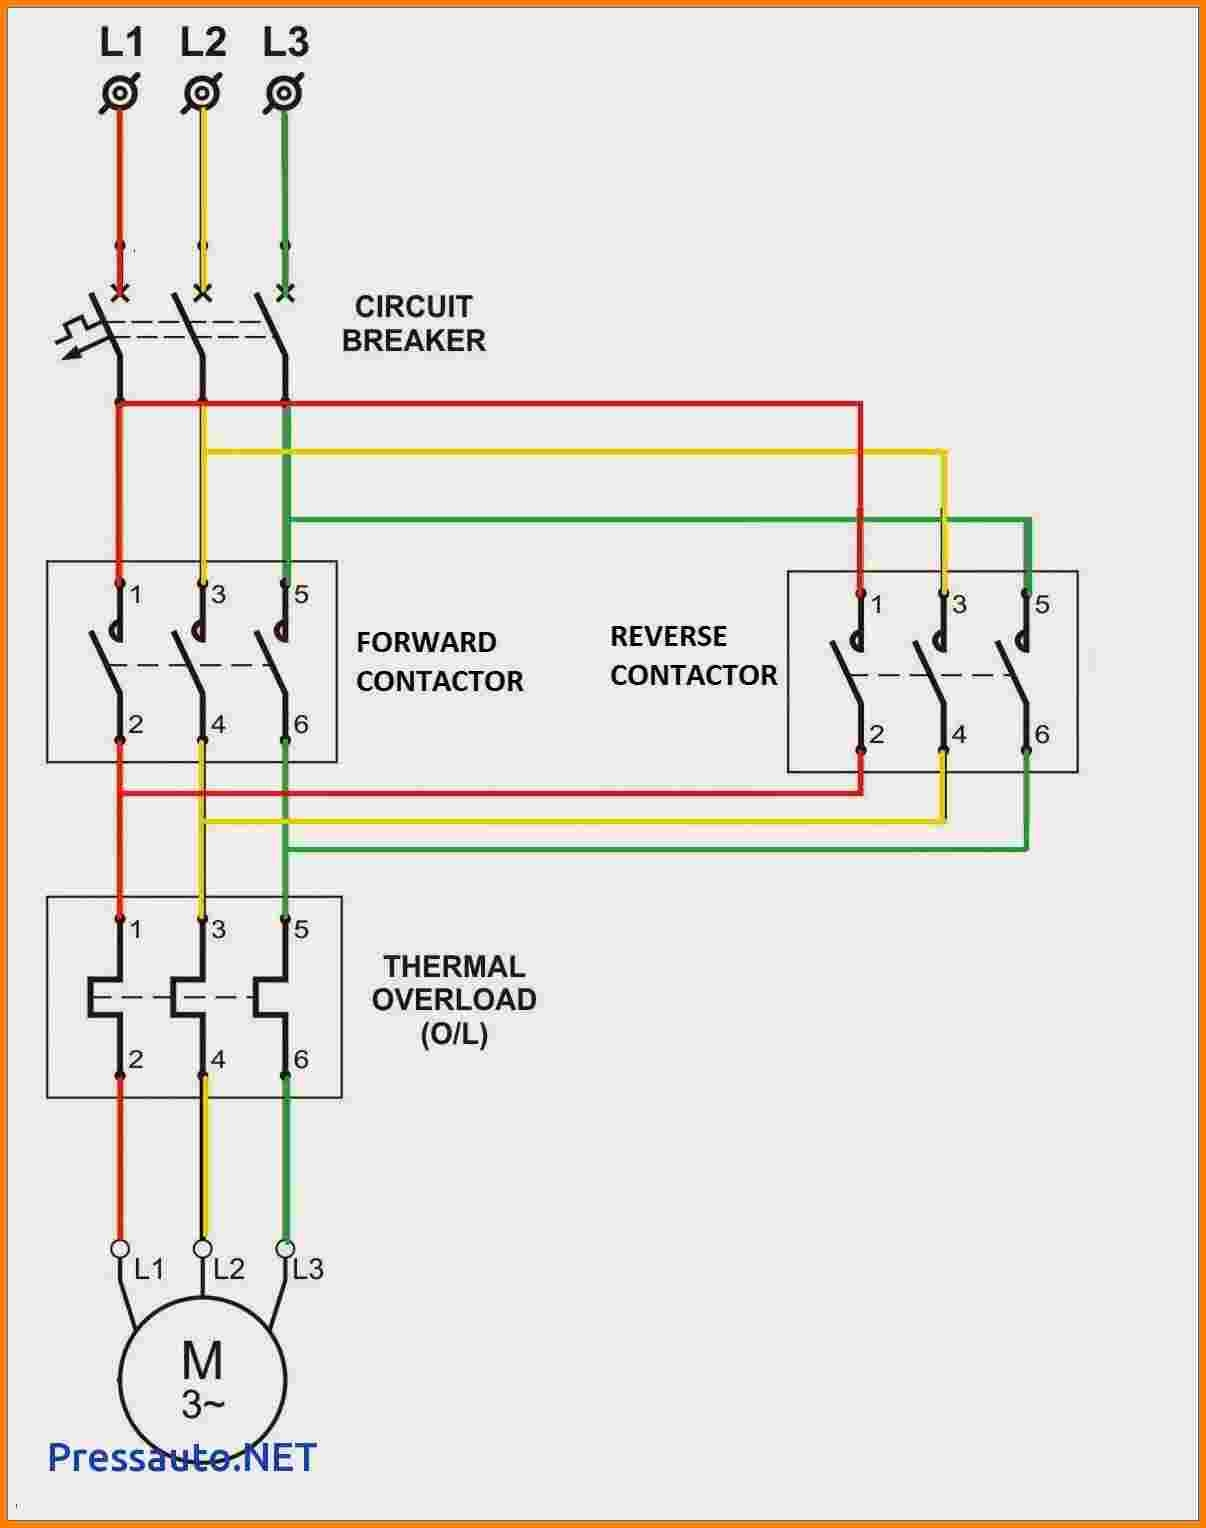 push button start stop wiring diagram start stop wiring diagram pdf